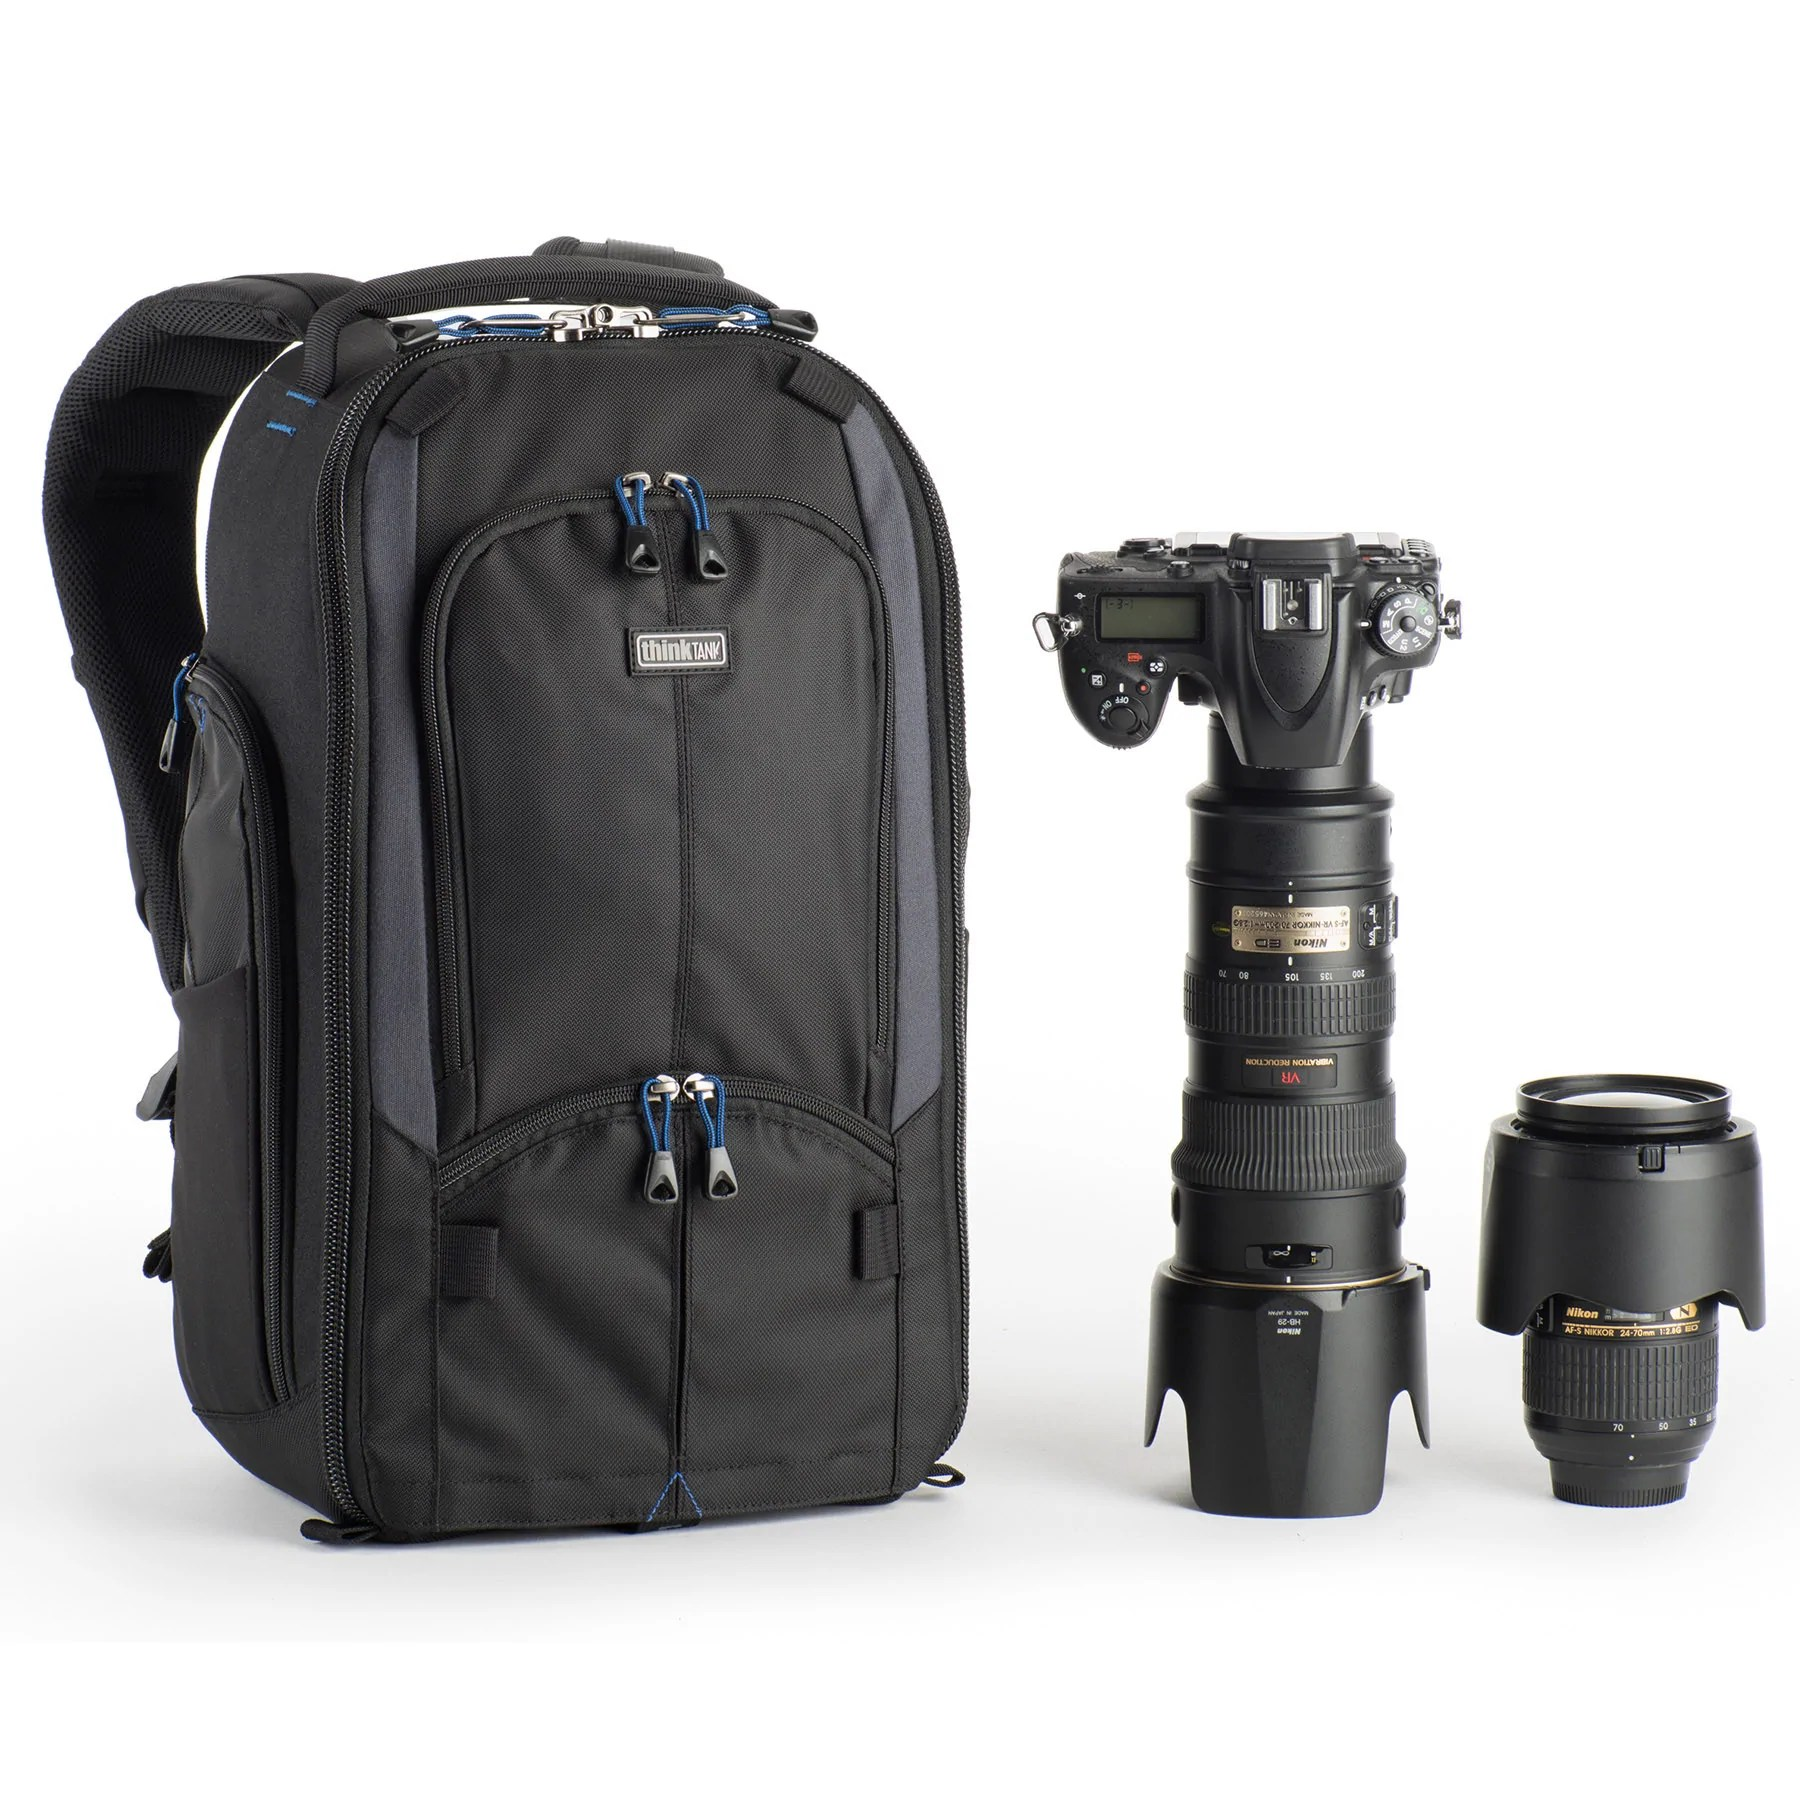 Lovely Photography Dslr Camera Backpack Think Tankphoto Photography Dslr Camera Backpack Think Think Tank Photo Streetwalker Think Tank Photo Turnstyle 10 V2 0 dpreview Think Tank Photo